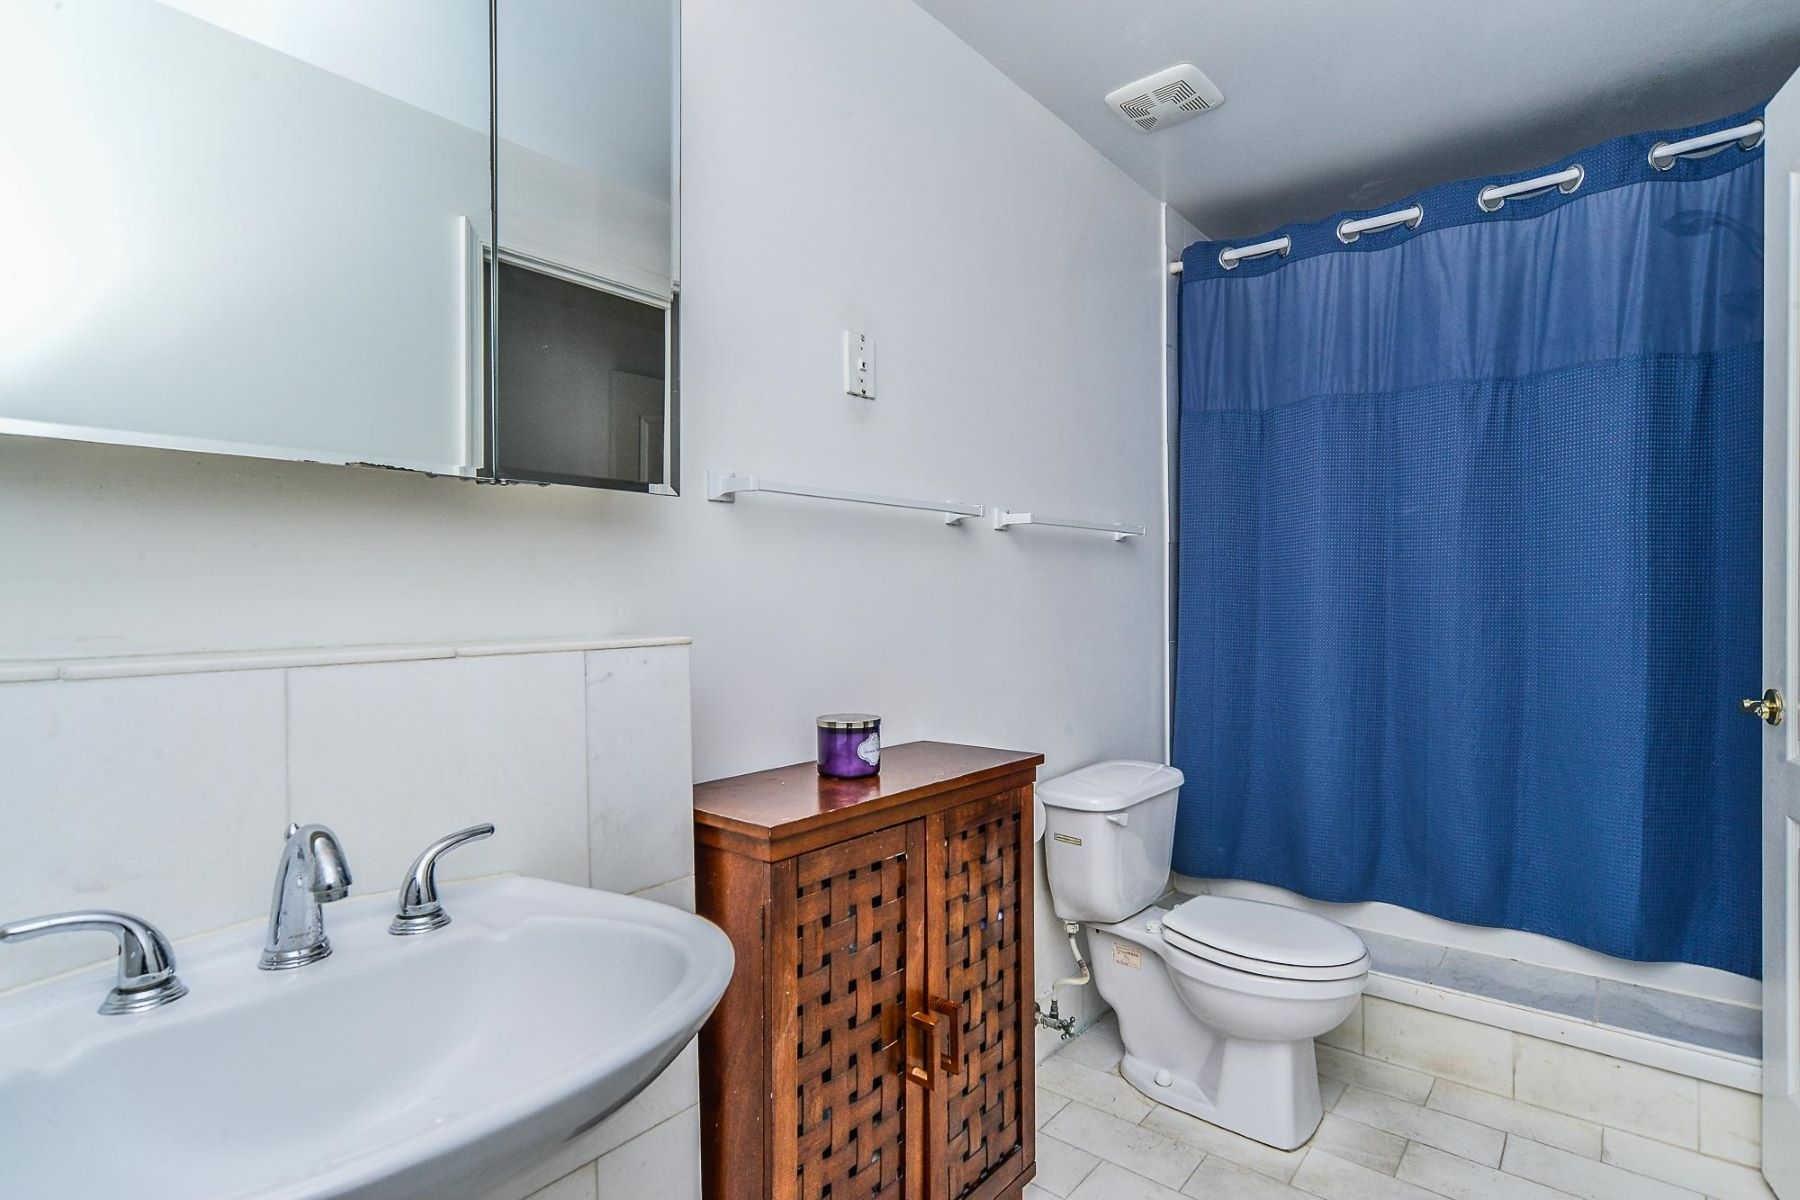 Additional photo for property listing at 1211 Eads St #1204 1211 Eads St #1204 Arlington, Virginia 22202 United States